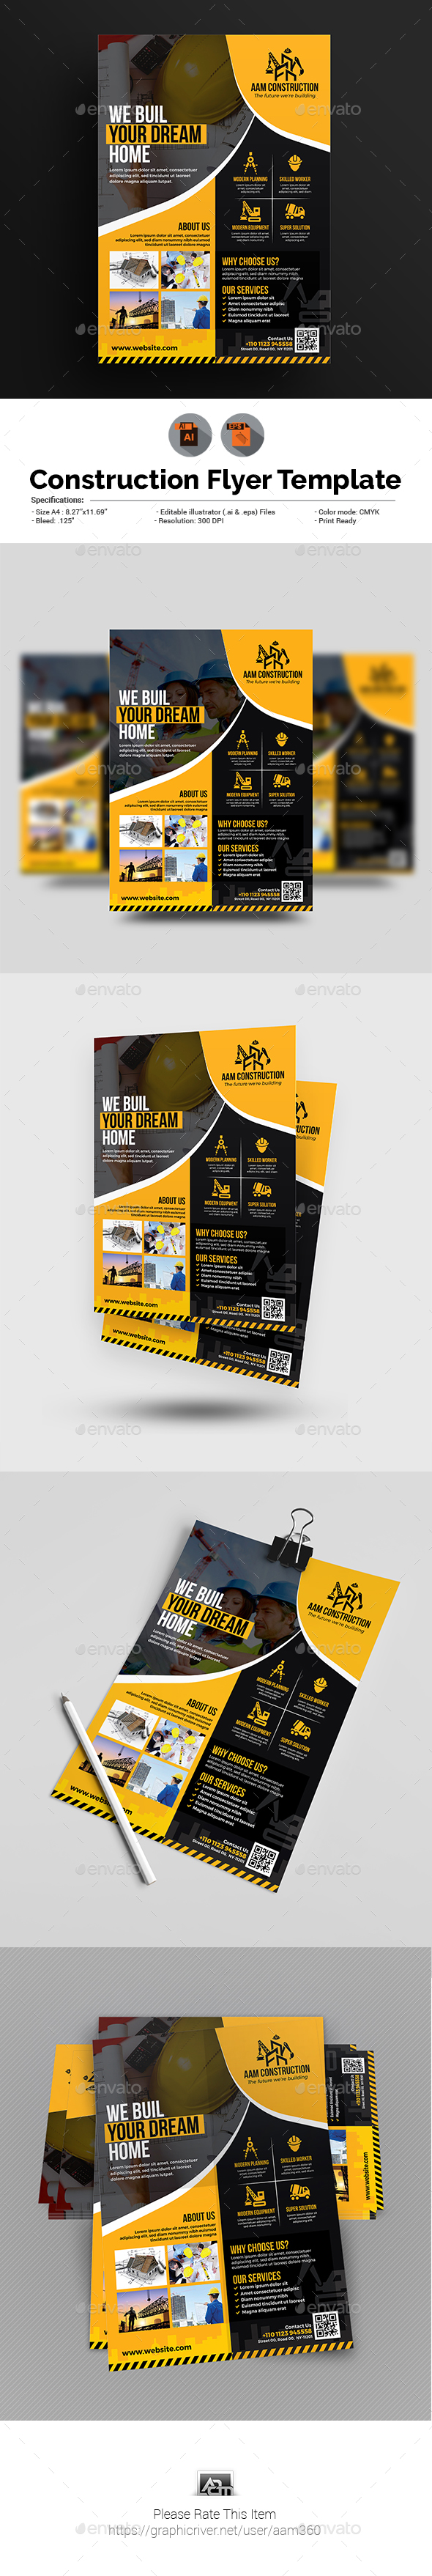 Construction Flyer Template - Corporate Flyers